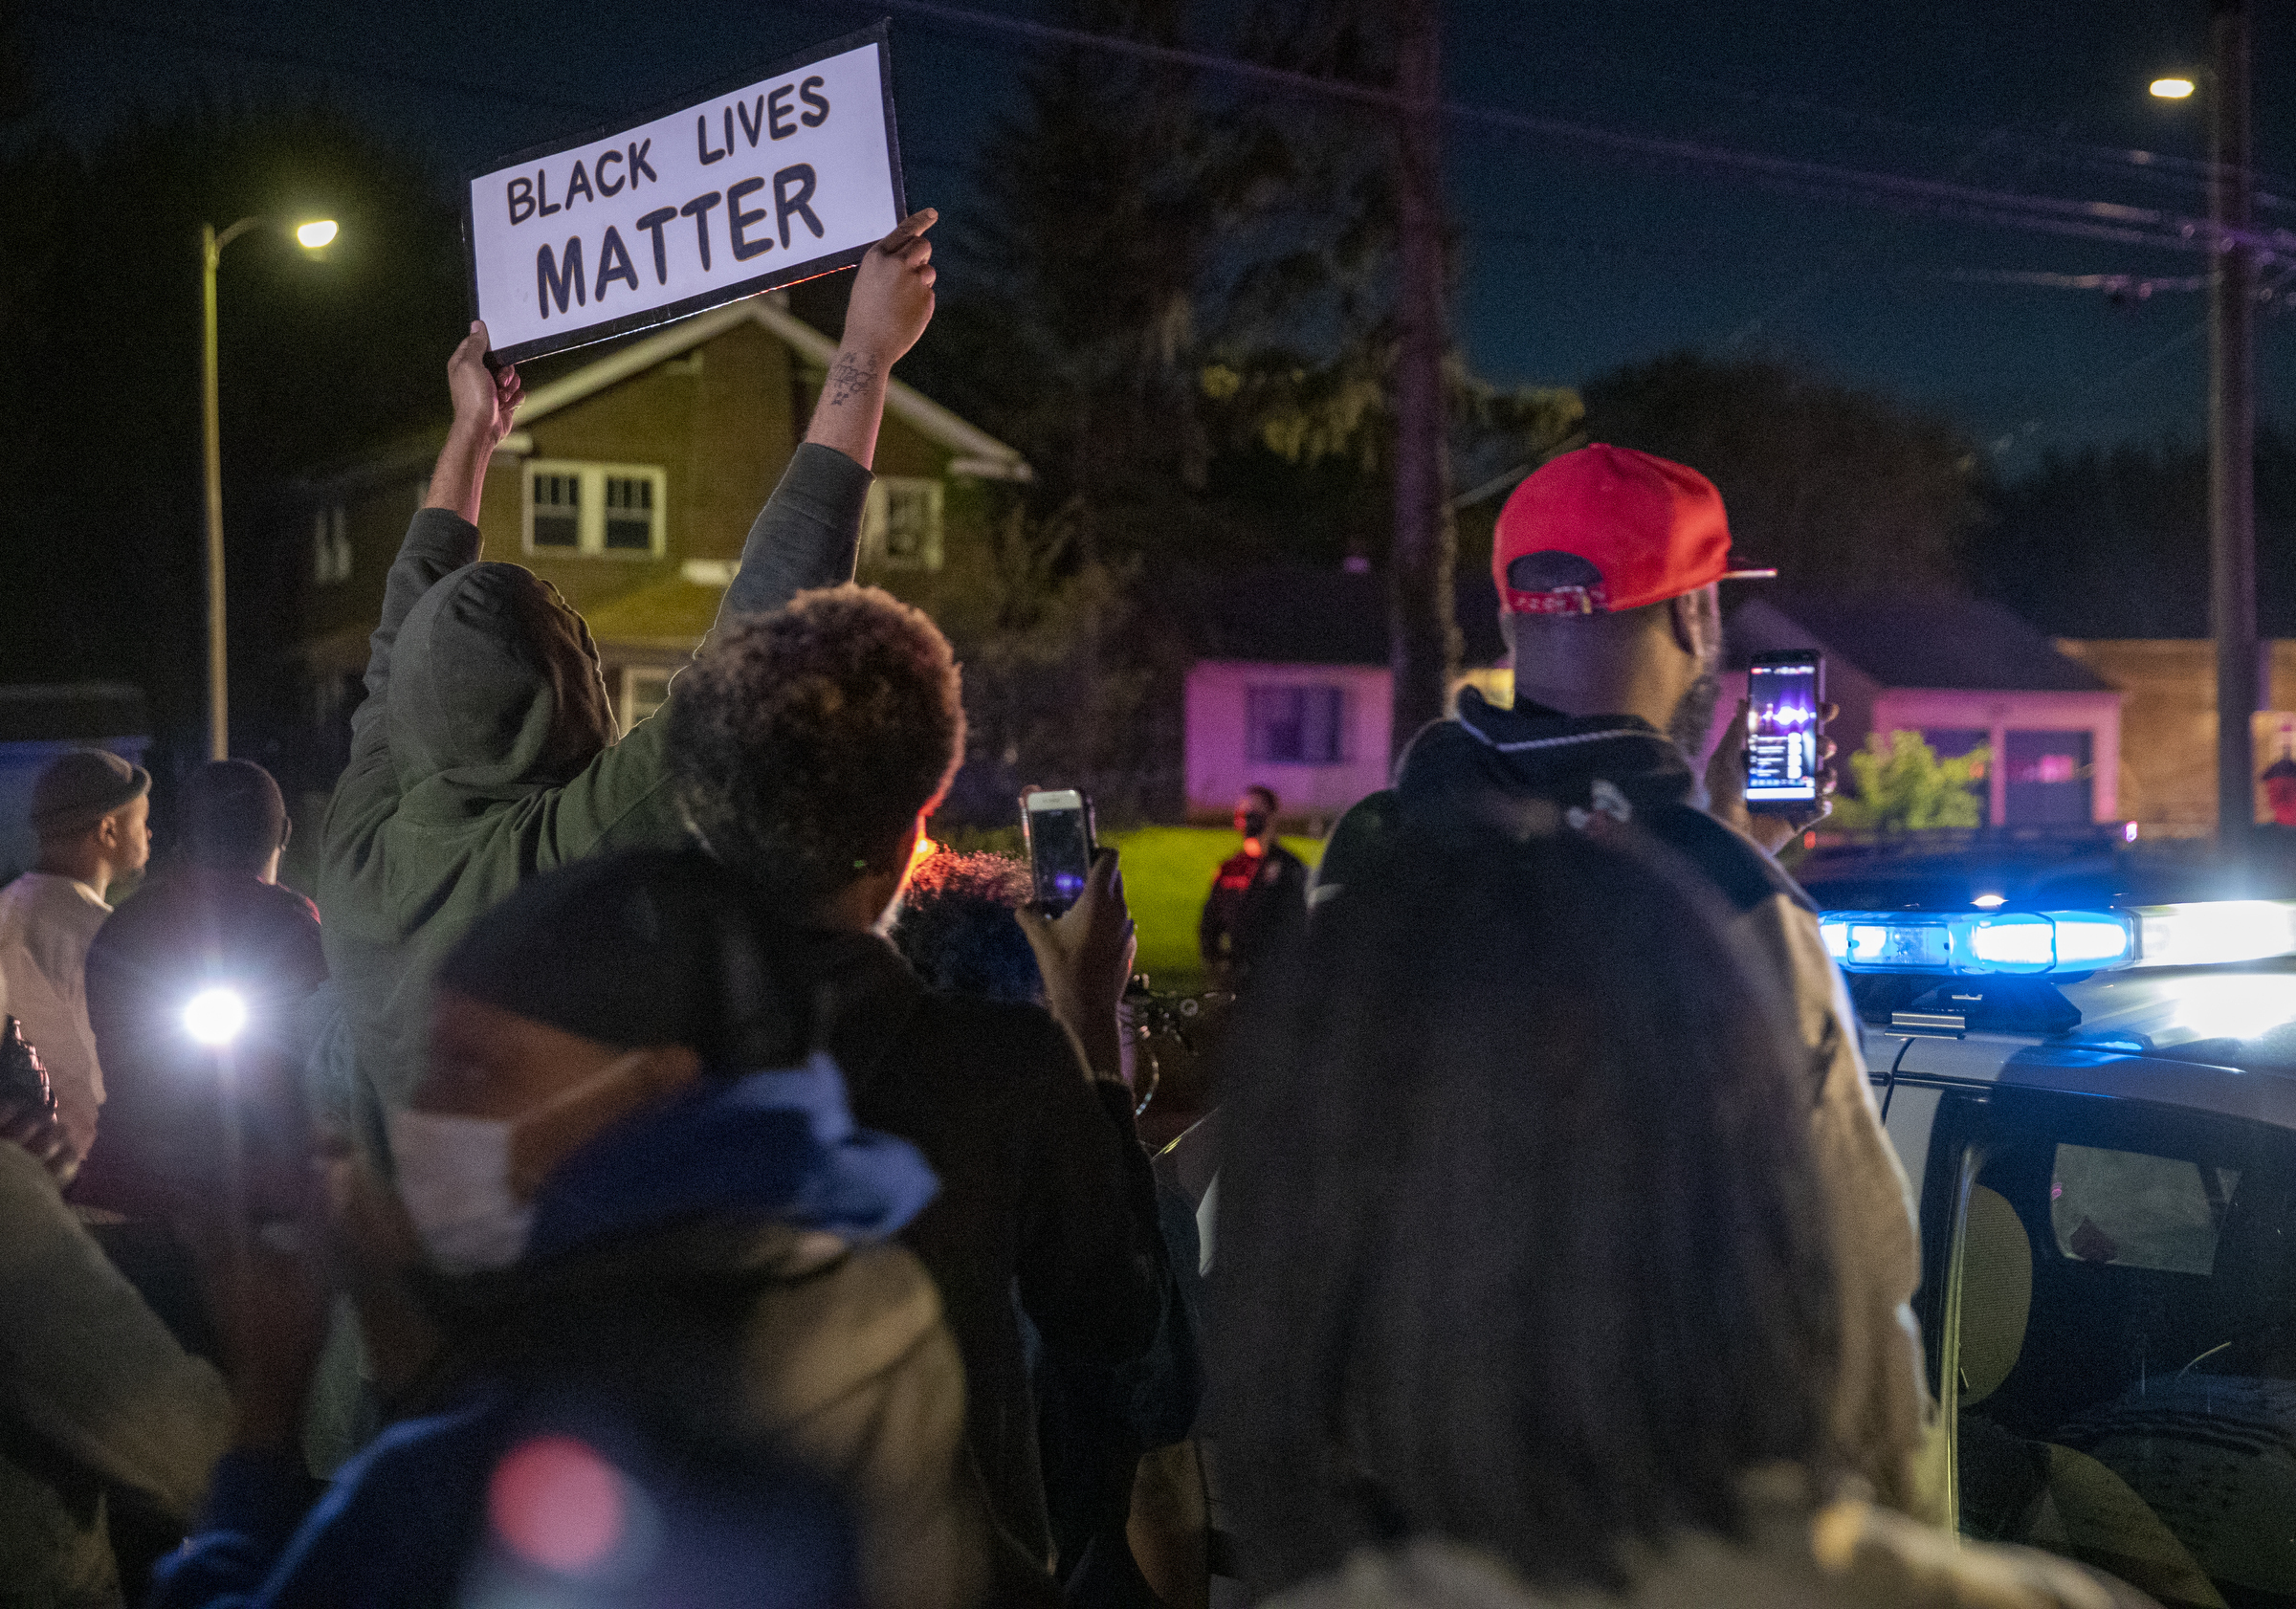 In this Wednesday, May 6, 2020 photo, community members protest in Indianapolis, hours after a man was killed during an Indianapolis police involved shooting which was apparently captured in part on Facebook Live video.